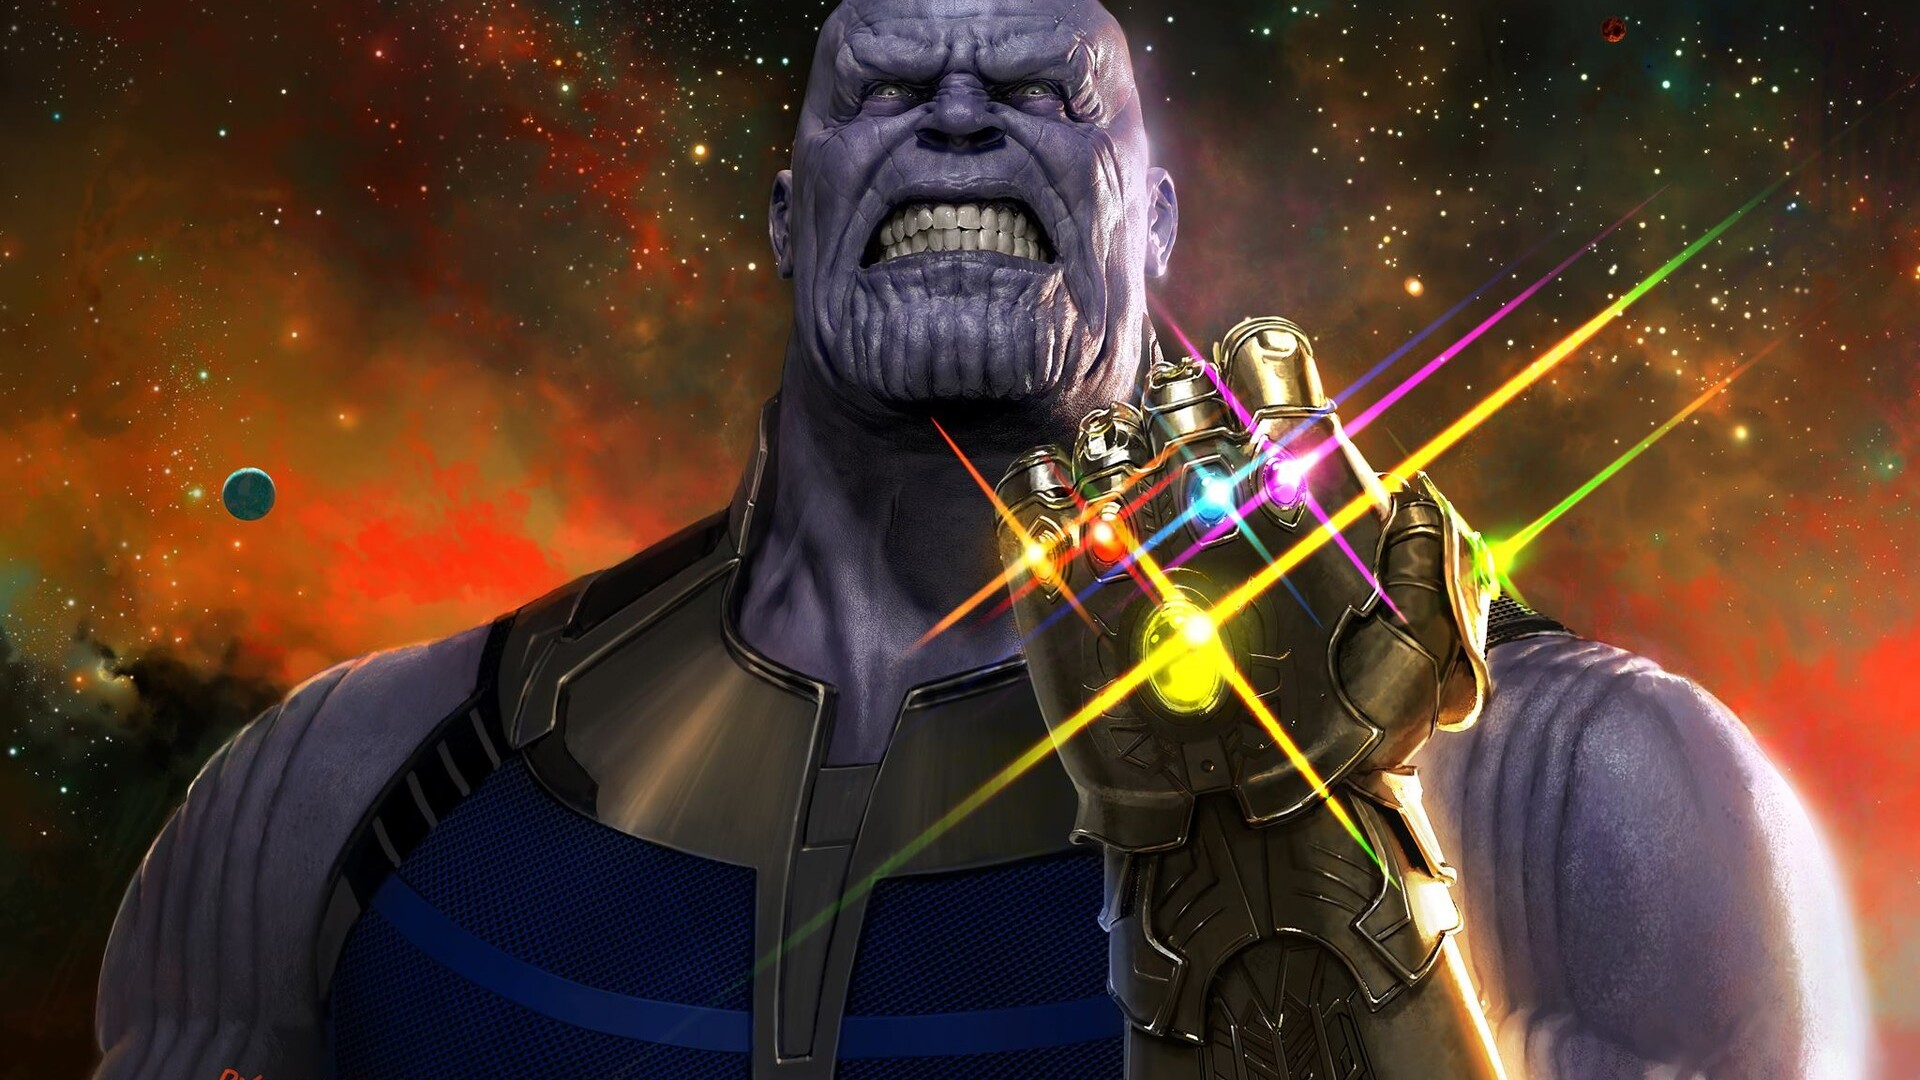 1920x1080 Thanos Avengers Infinity War Laptop Full Hd 1080p